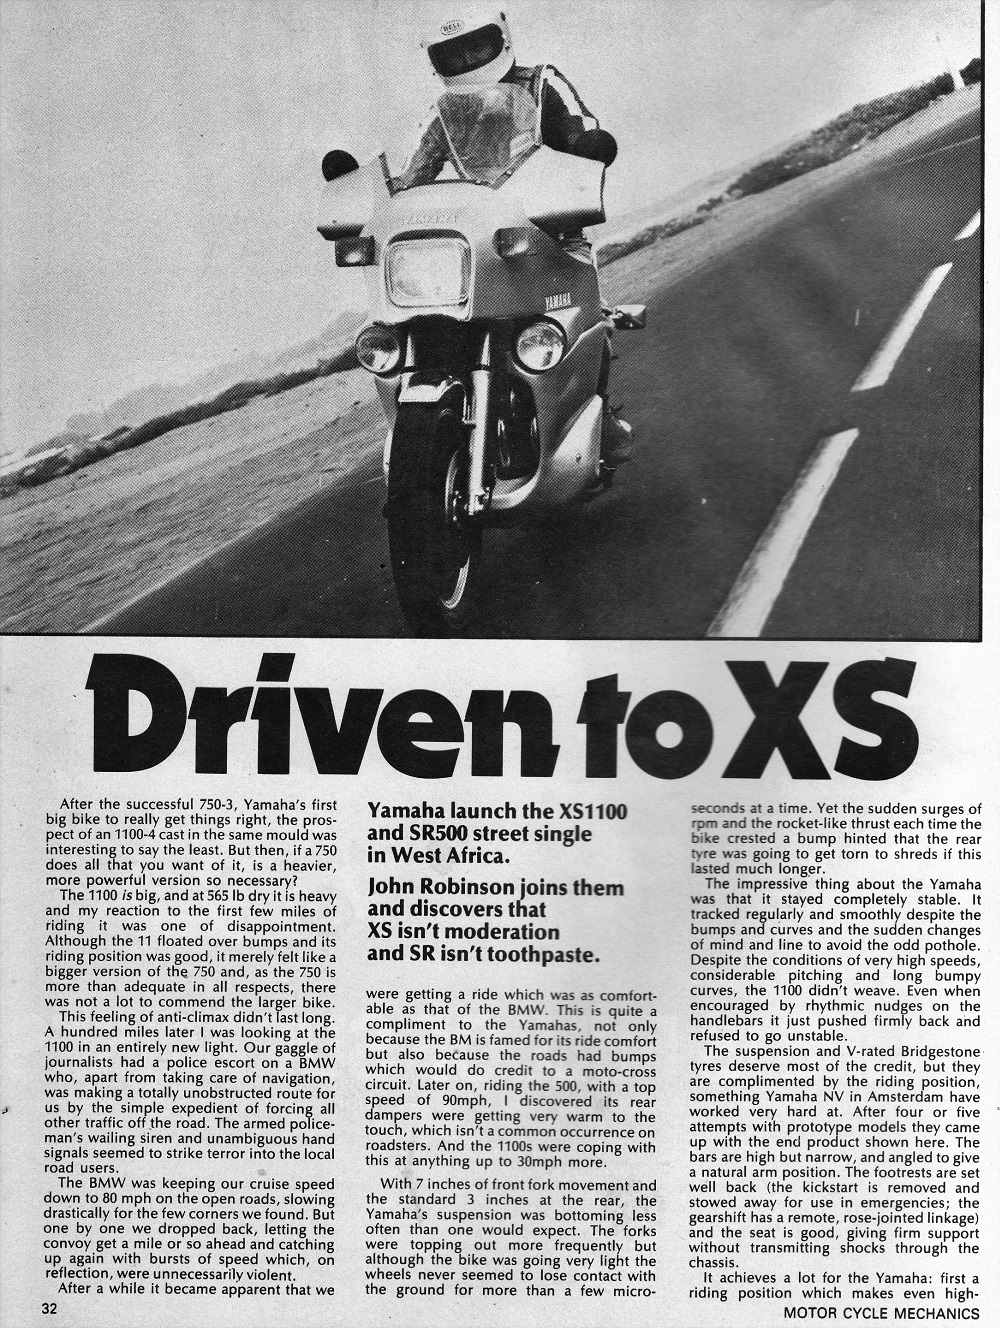 1978 Yamaha XS1100 road test.1.jpg